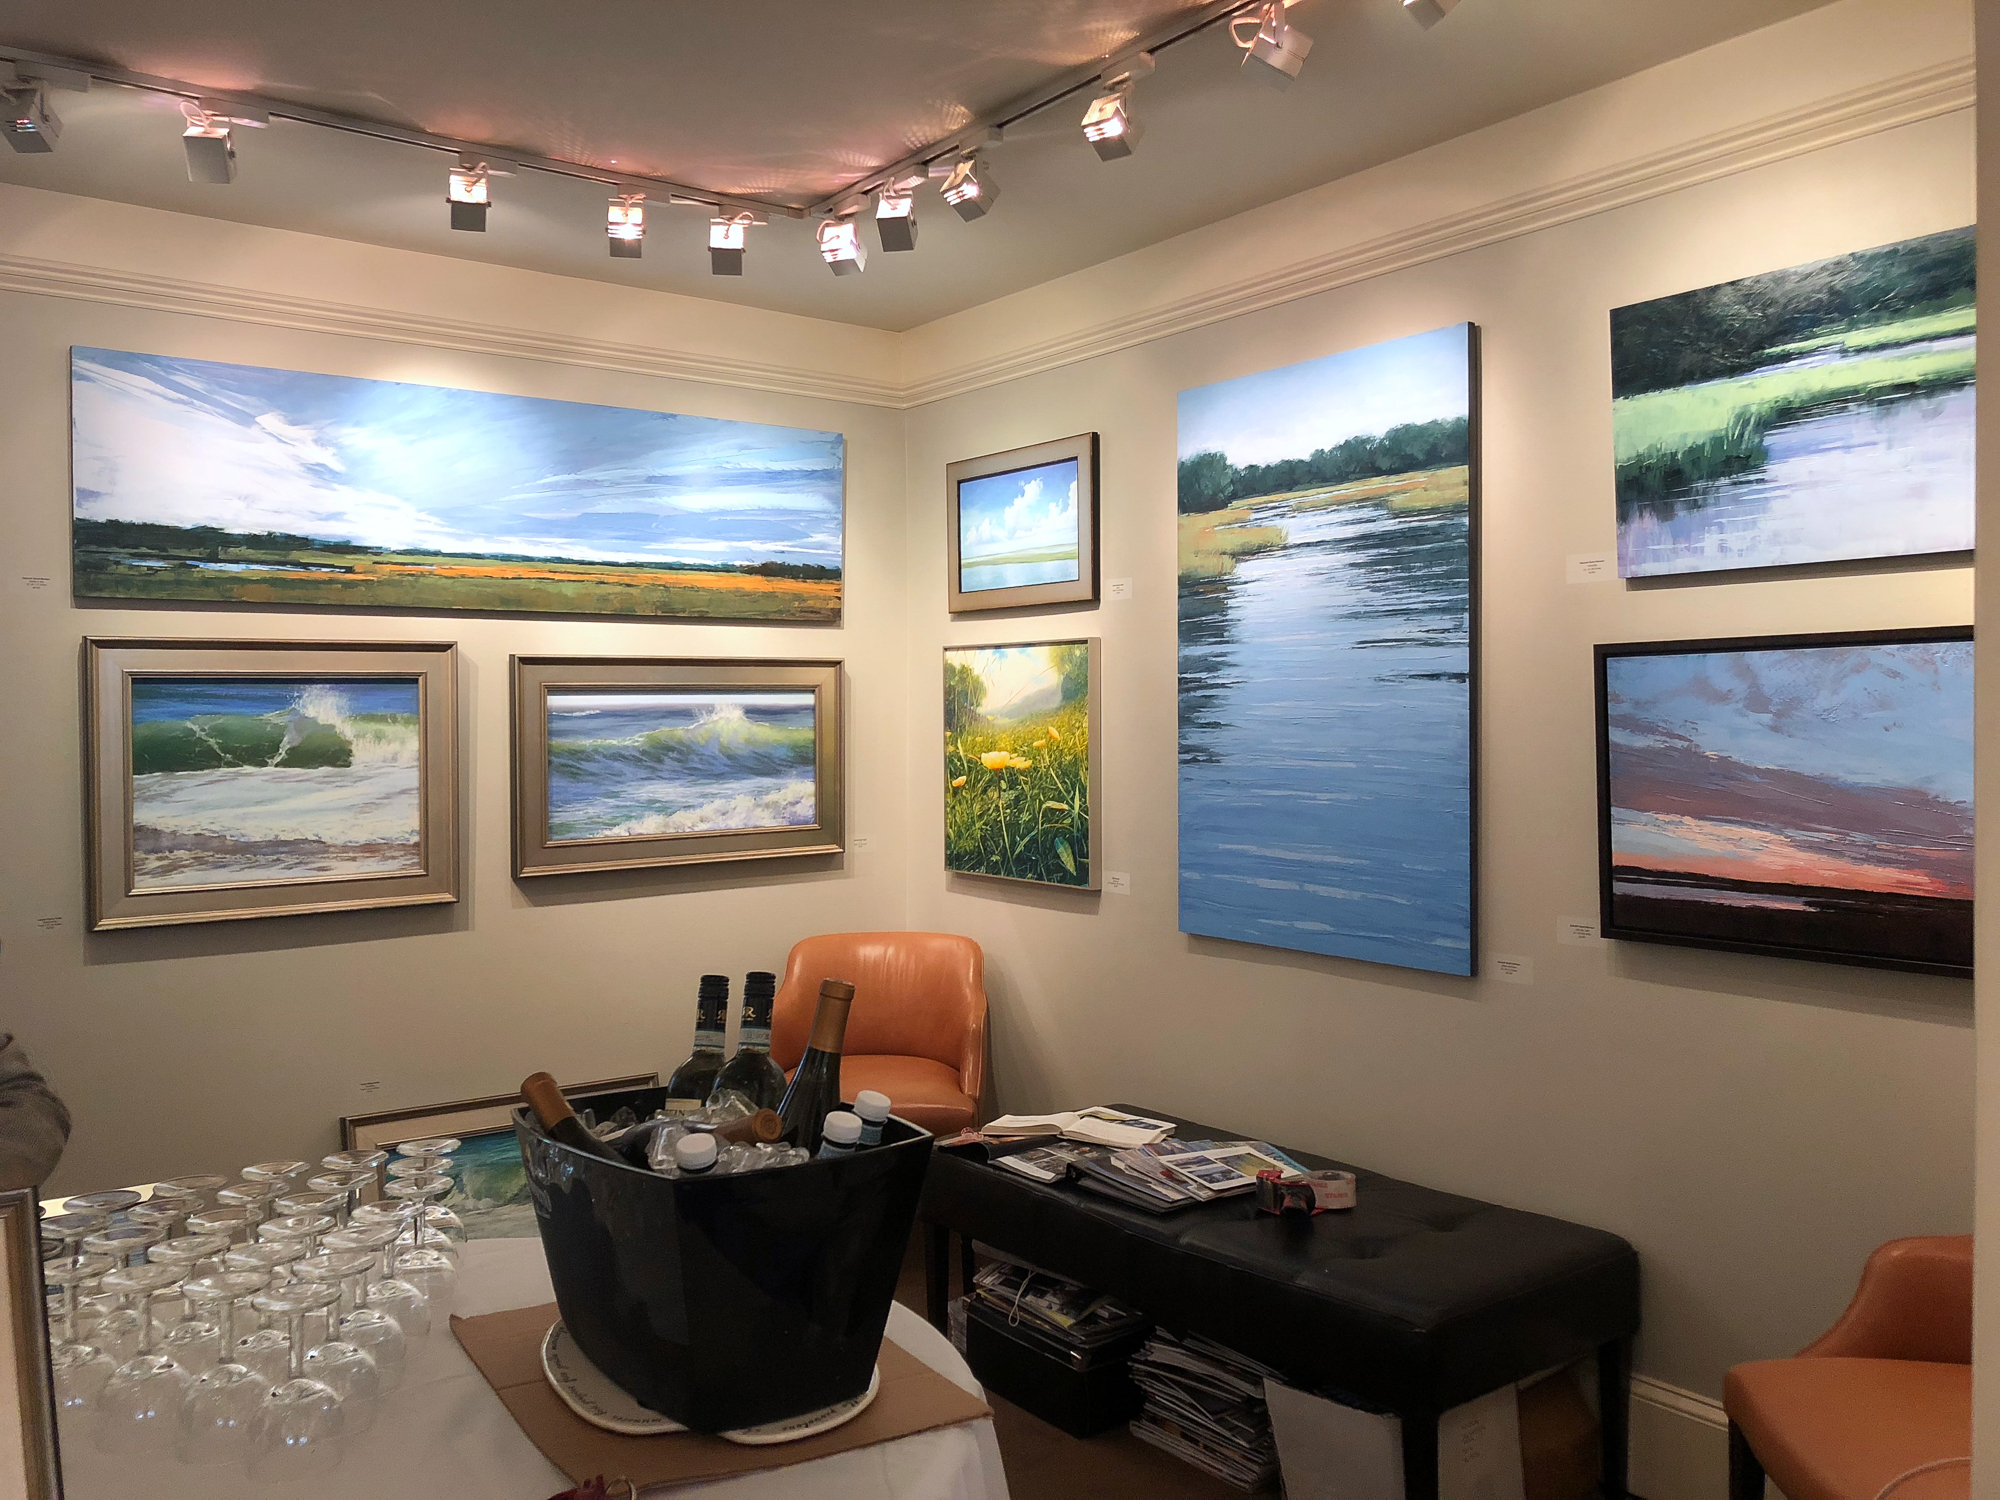 Show extended through October 7, 2018. 679 Boston Post Rd, Madison, CT